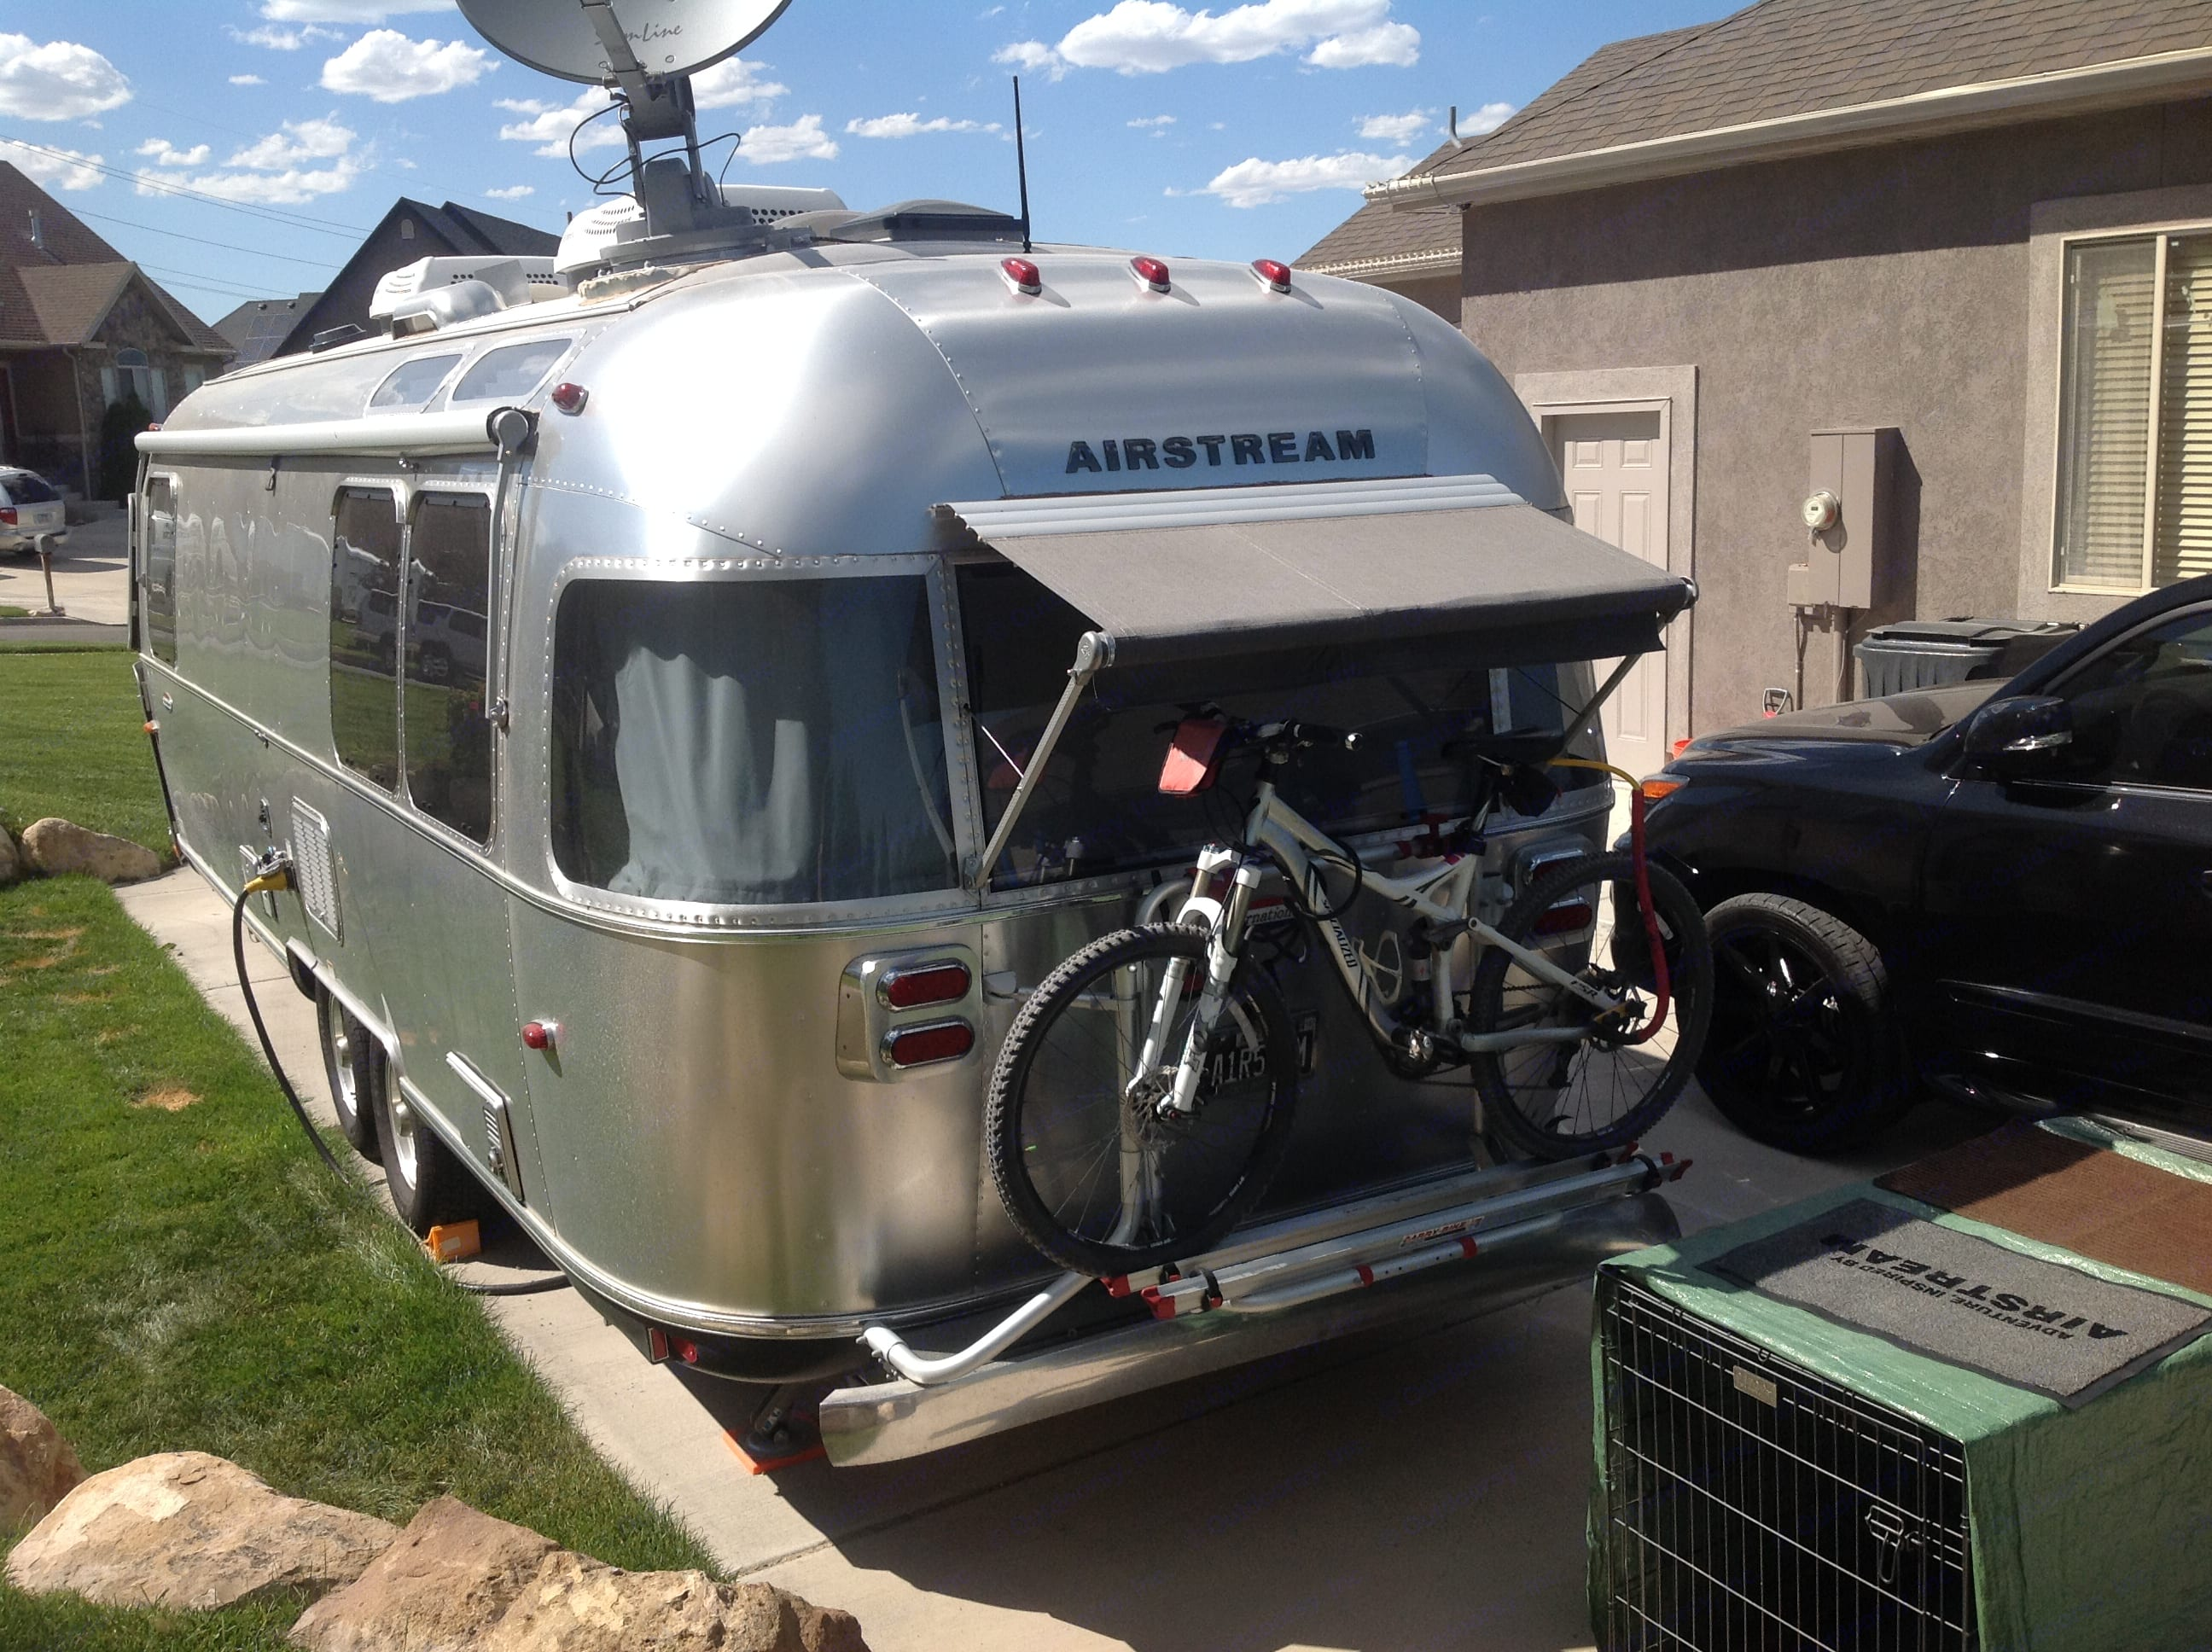 Exterior with bike rack and rear awning. Airstream International 2015